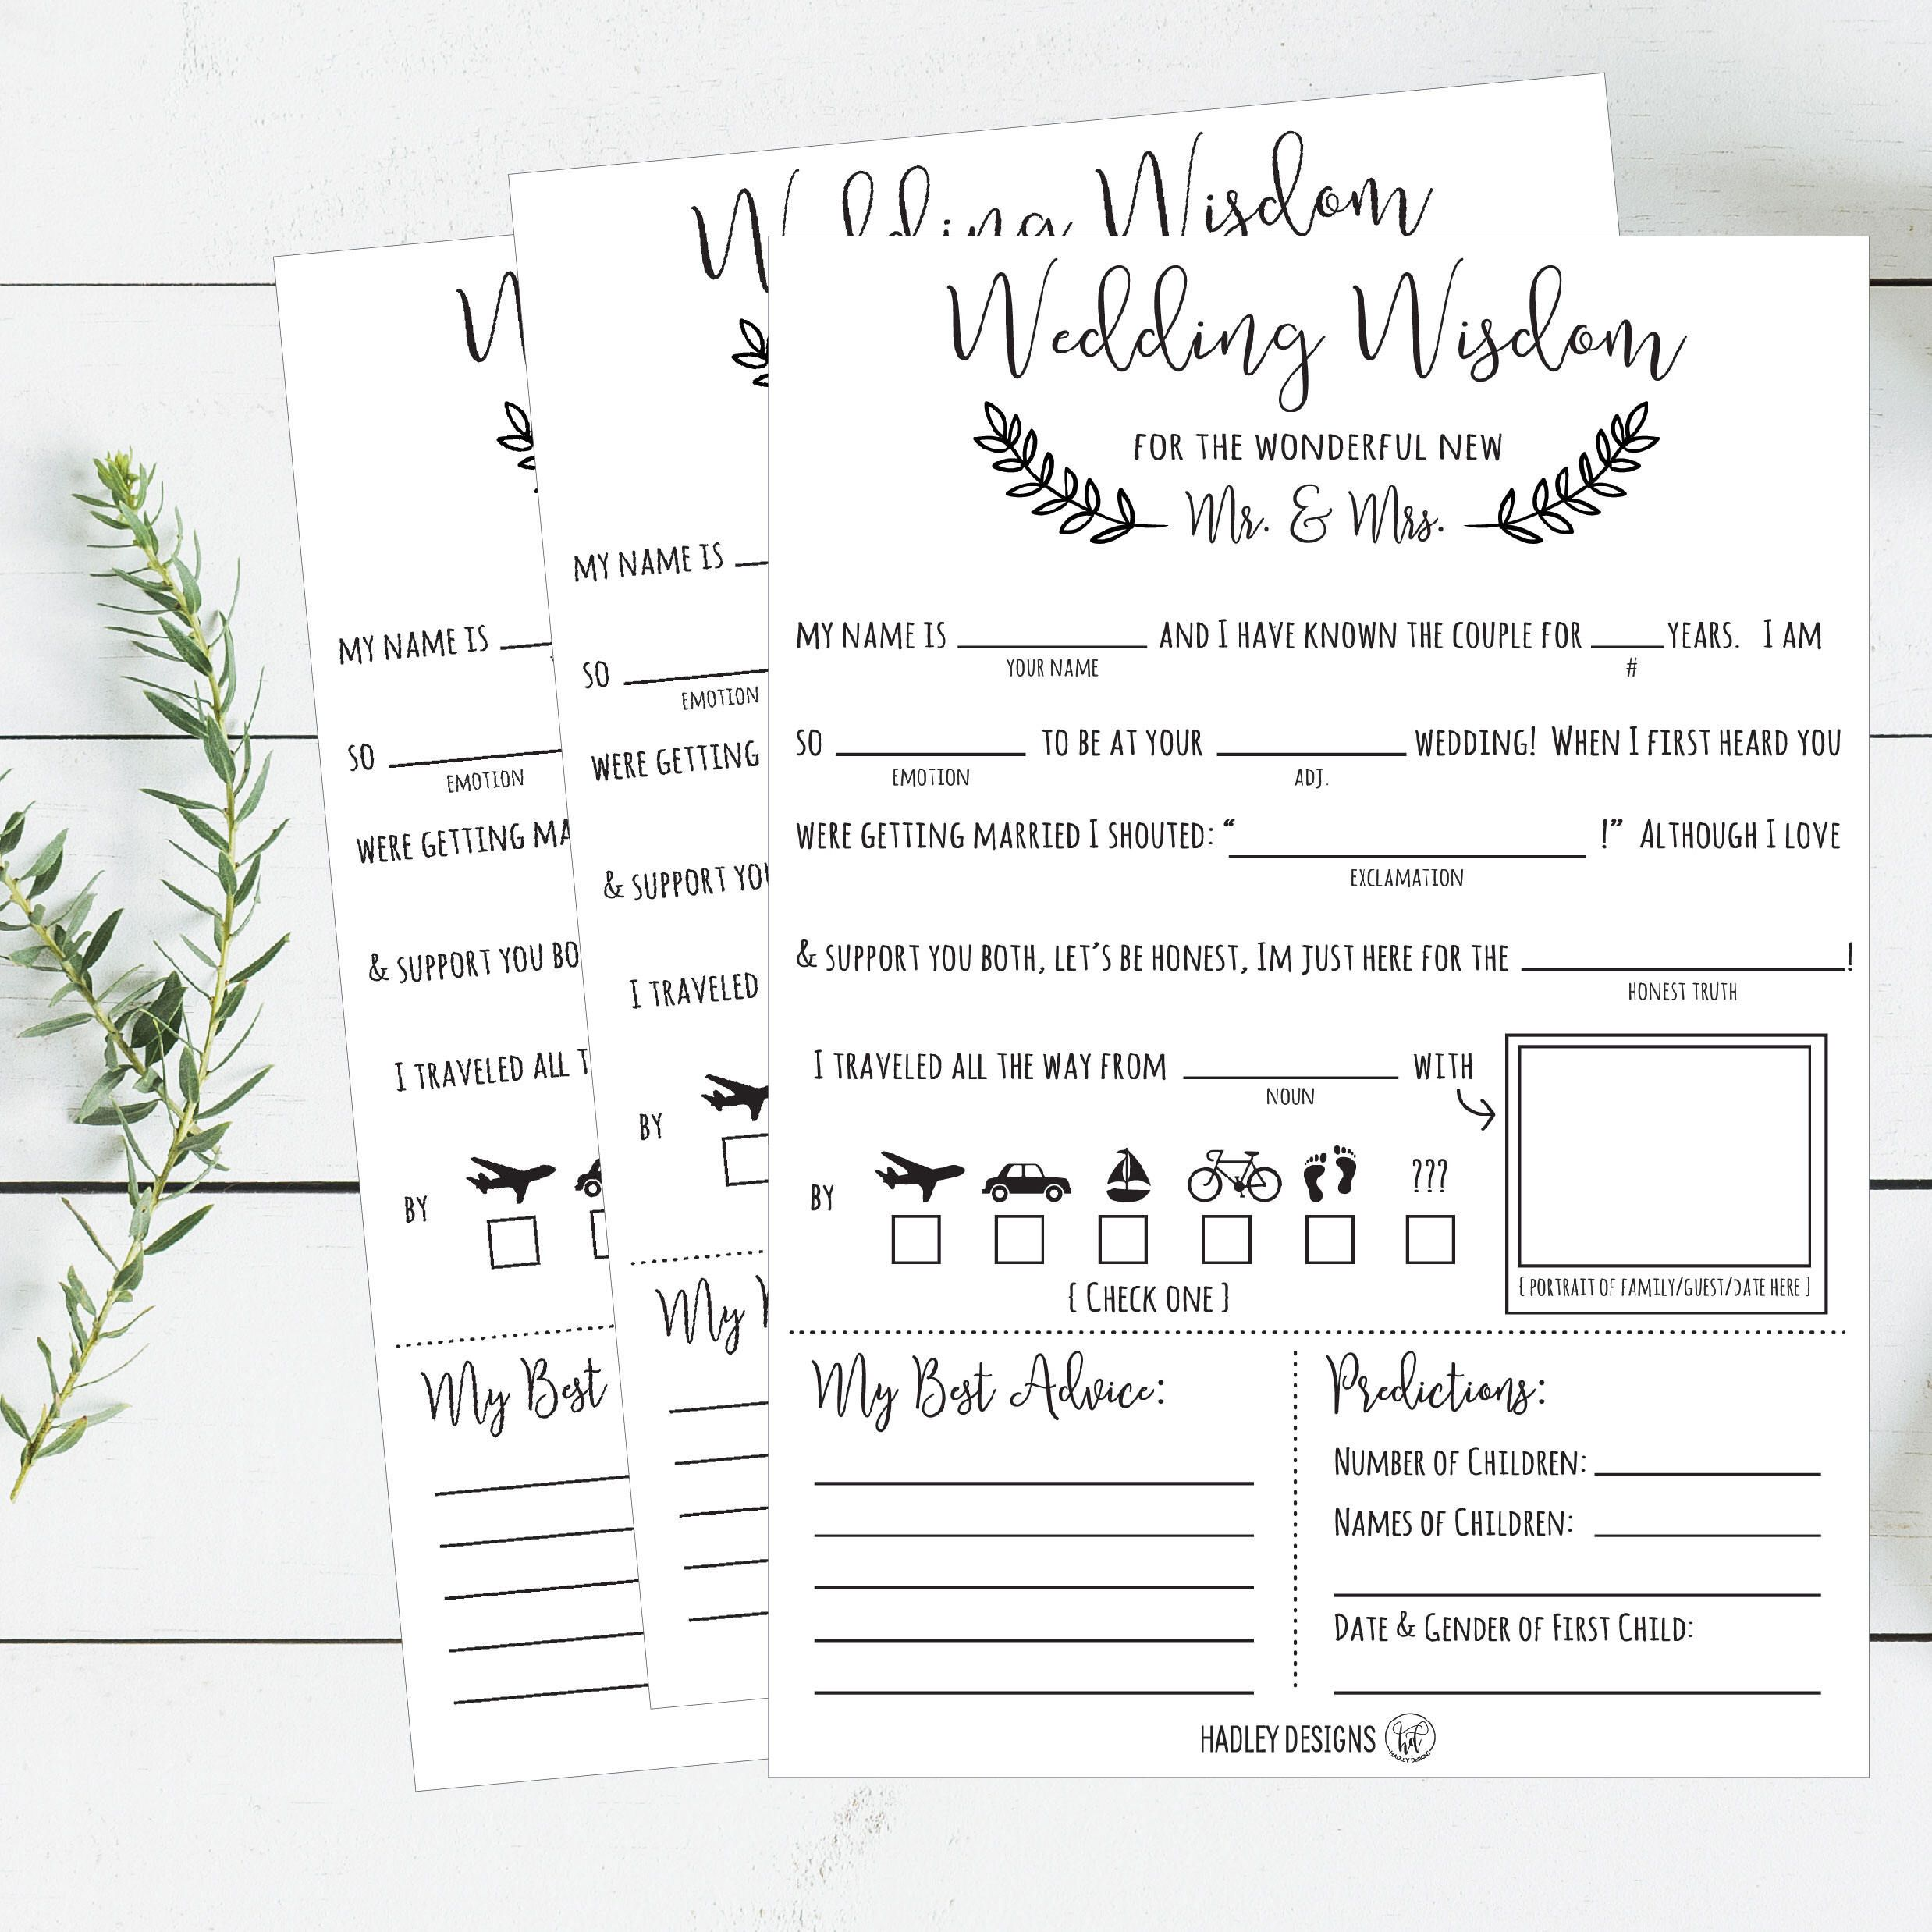 Mad libs Wedding Wisdom Printable Cards Rustic Elegant Bride